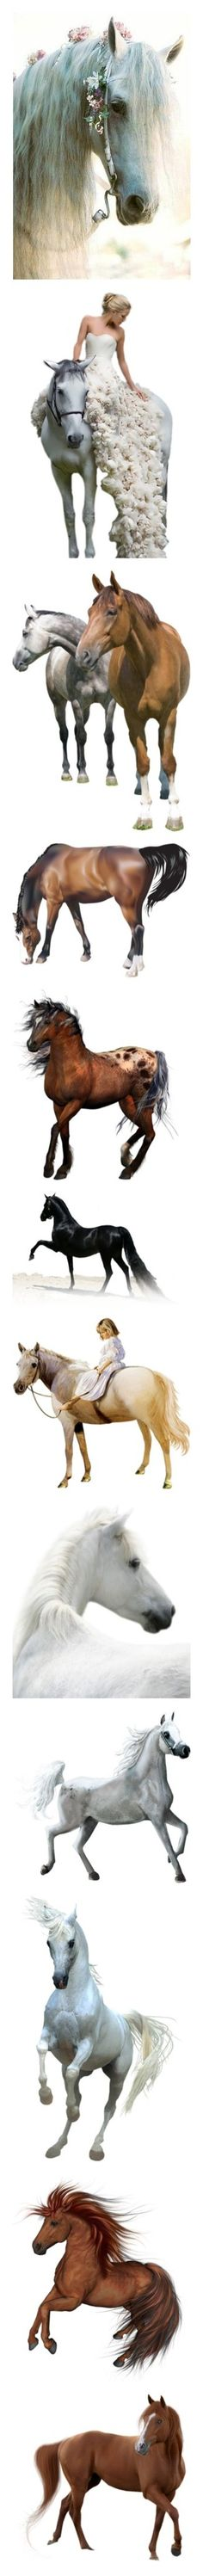 """""""other pets vol I"""" by kristie-miles ❤ liked on Polyvore featuring animals, backgrounds, horses, people, dolls, women, farm, filler, children and horse"""